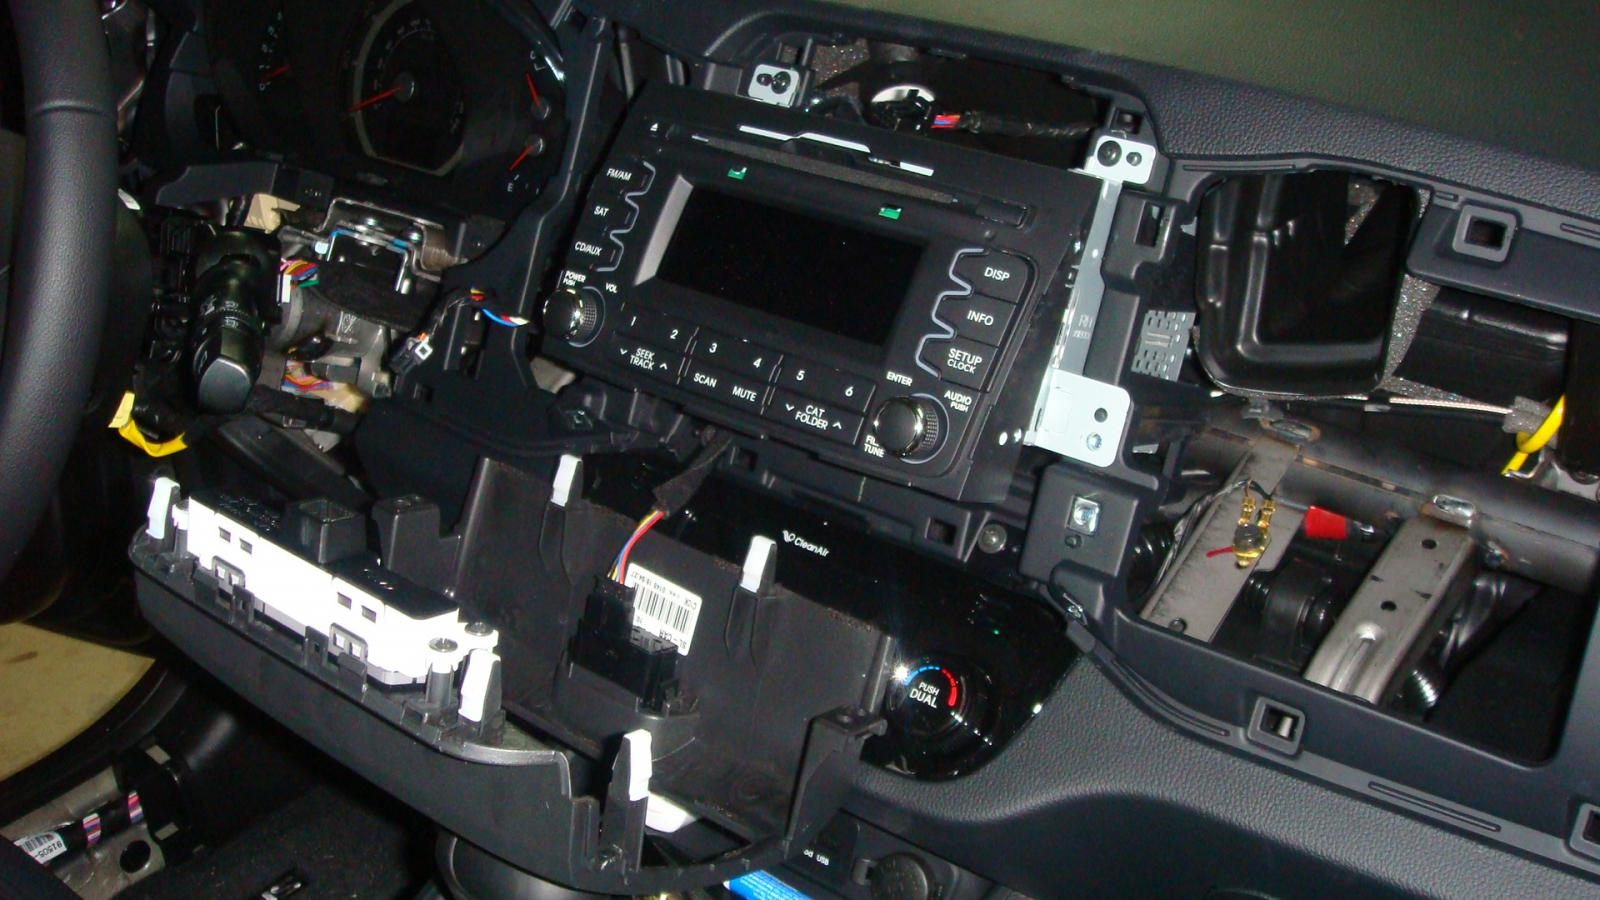 aftermarket sound system questions non nav kia forum click image for larger version 05255 jpg views 5297 size 176 3